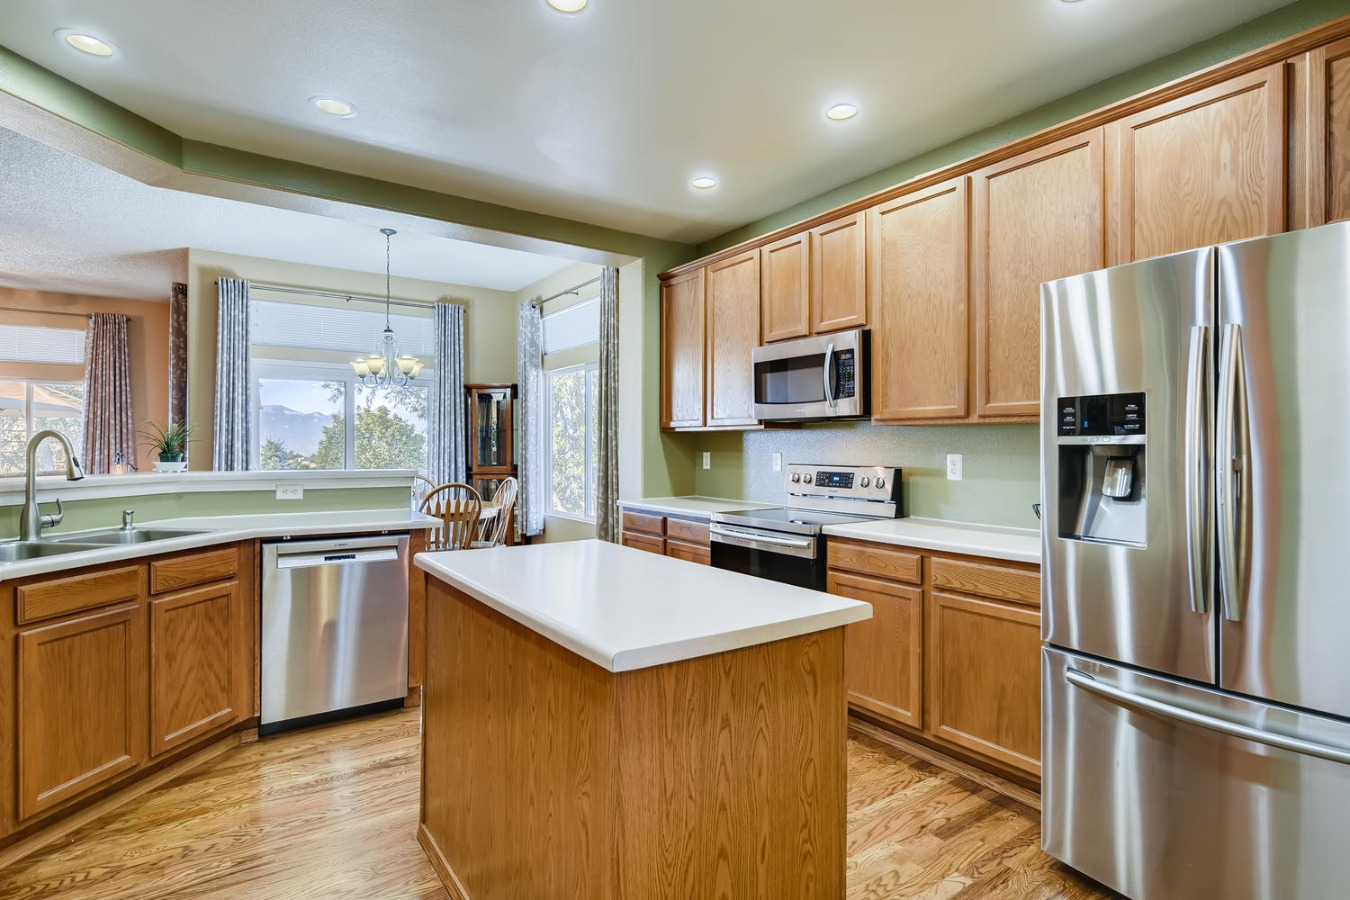 stainless stell appliances in the kitchen